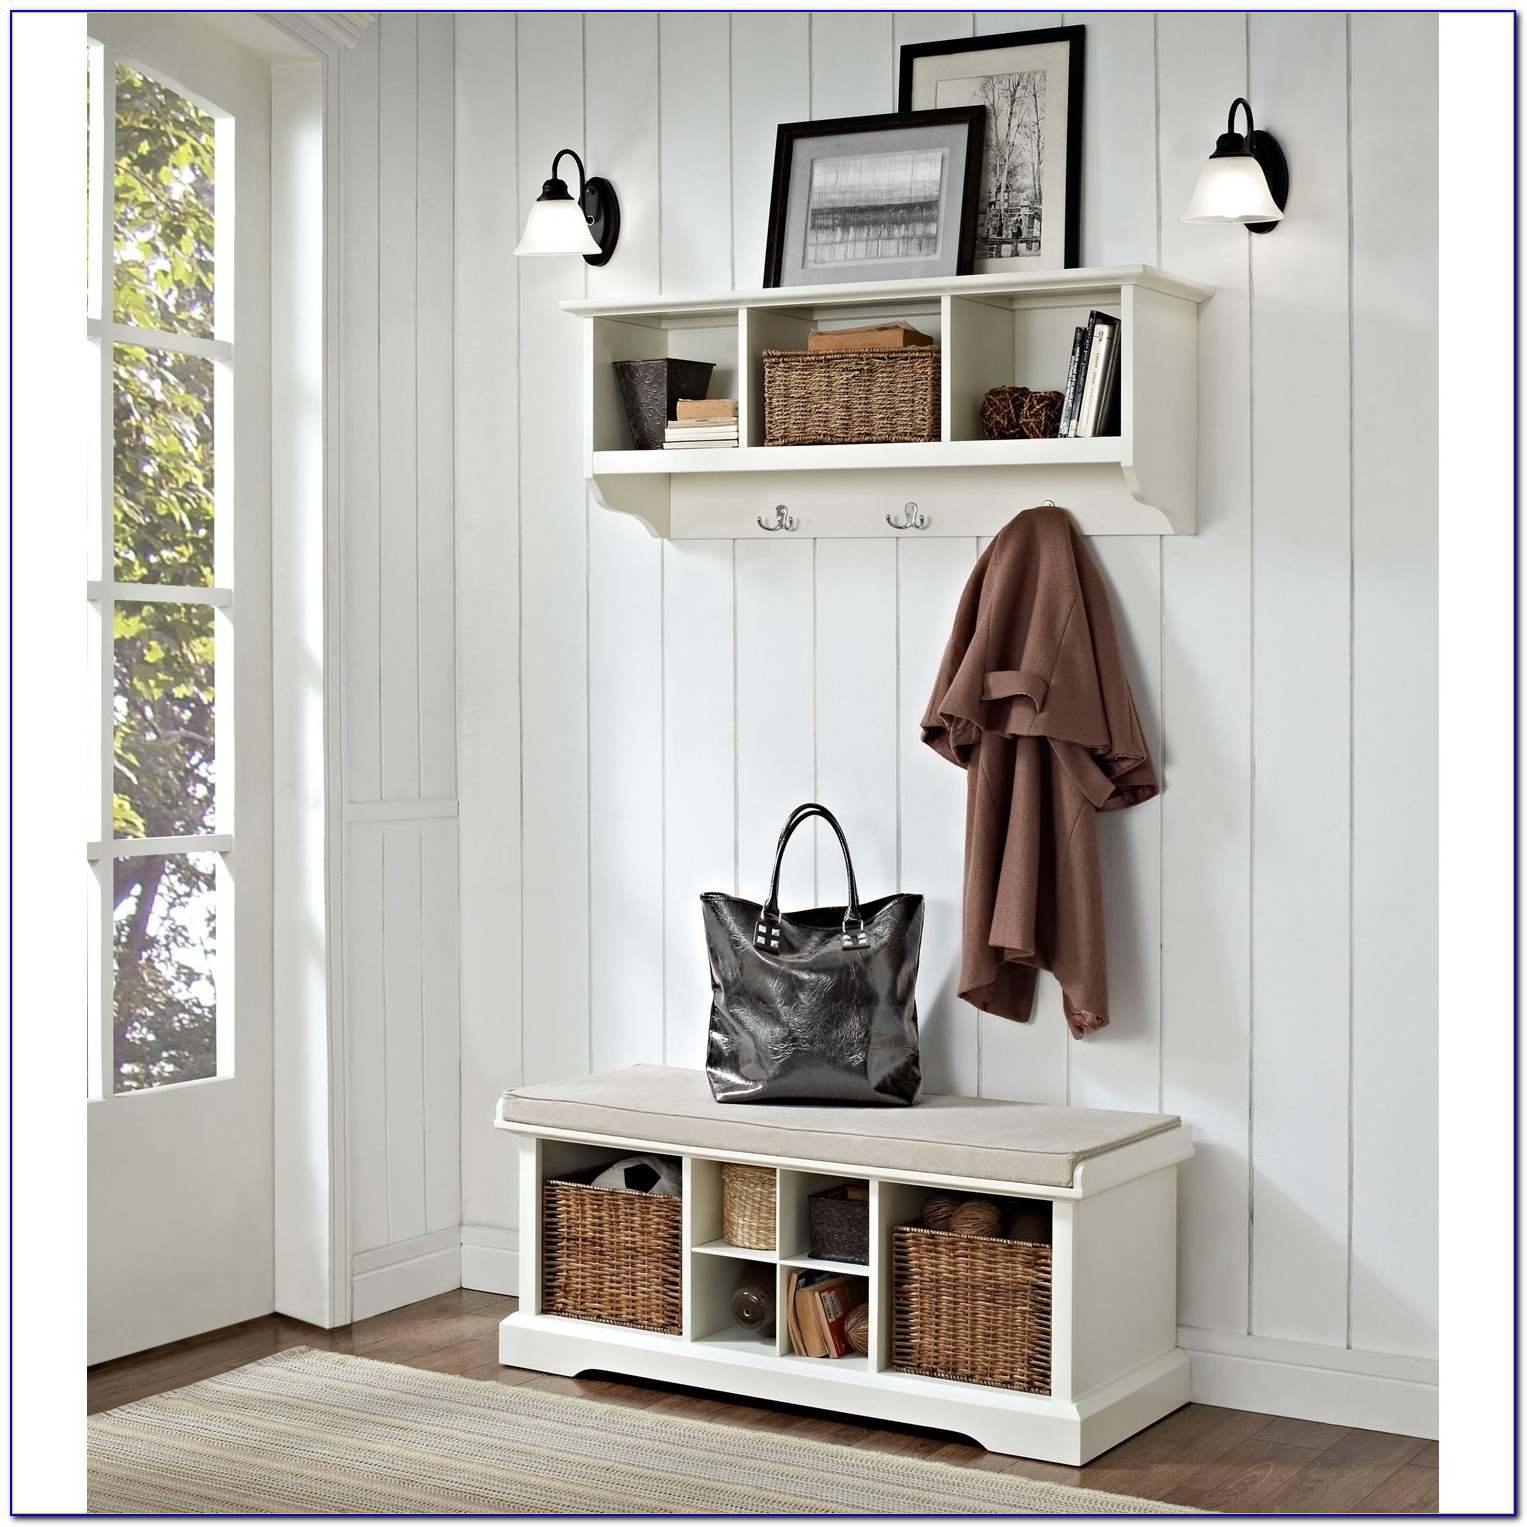 2 Piece Entryway Bench And Shelf Set